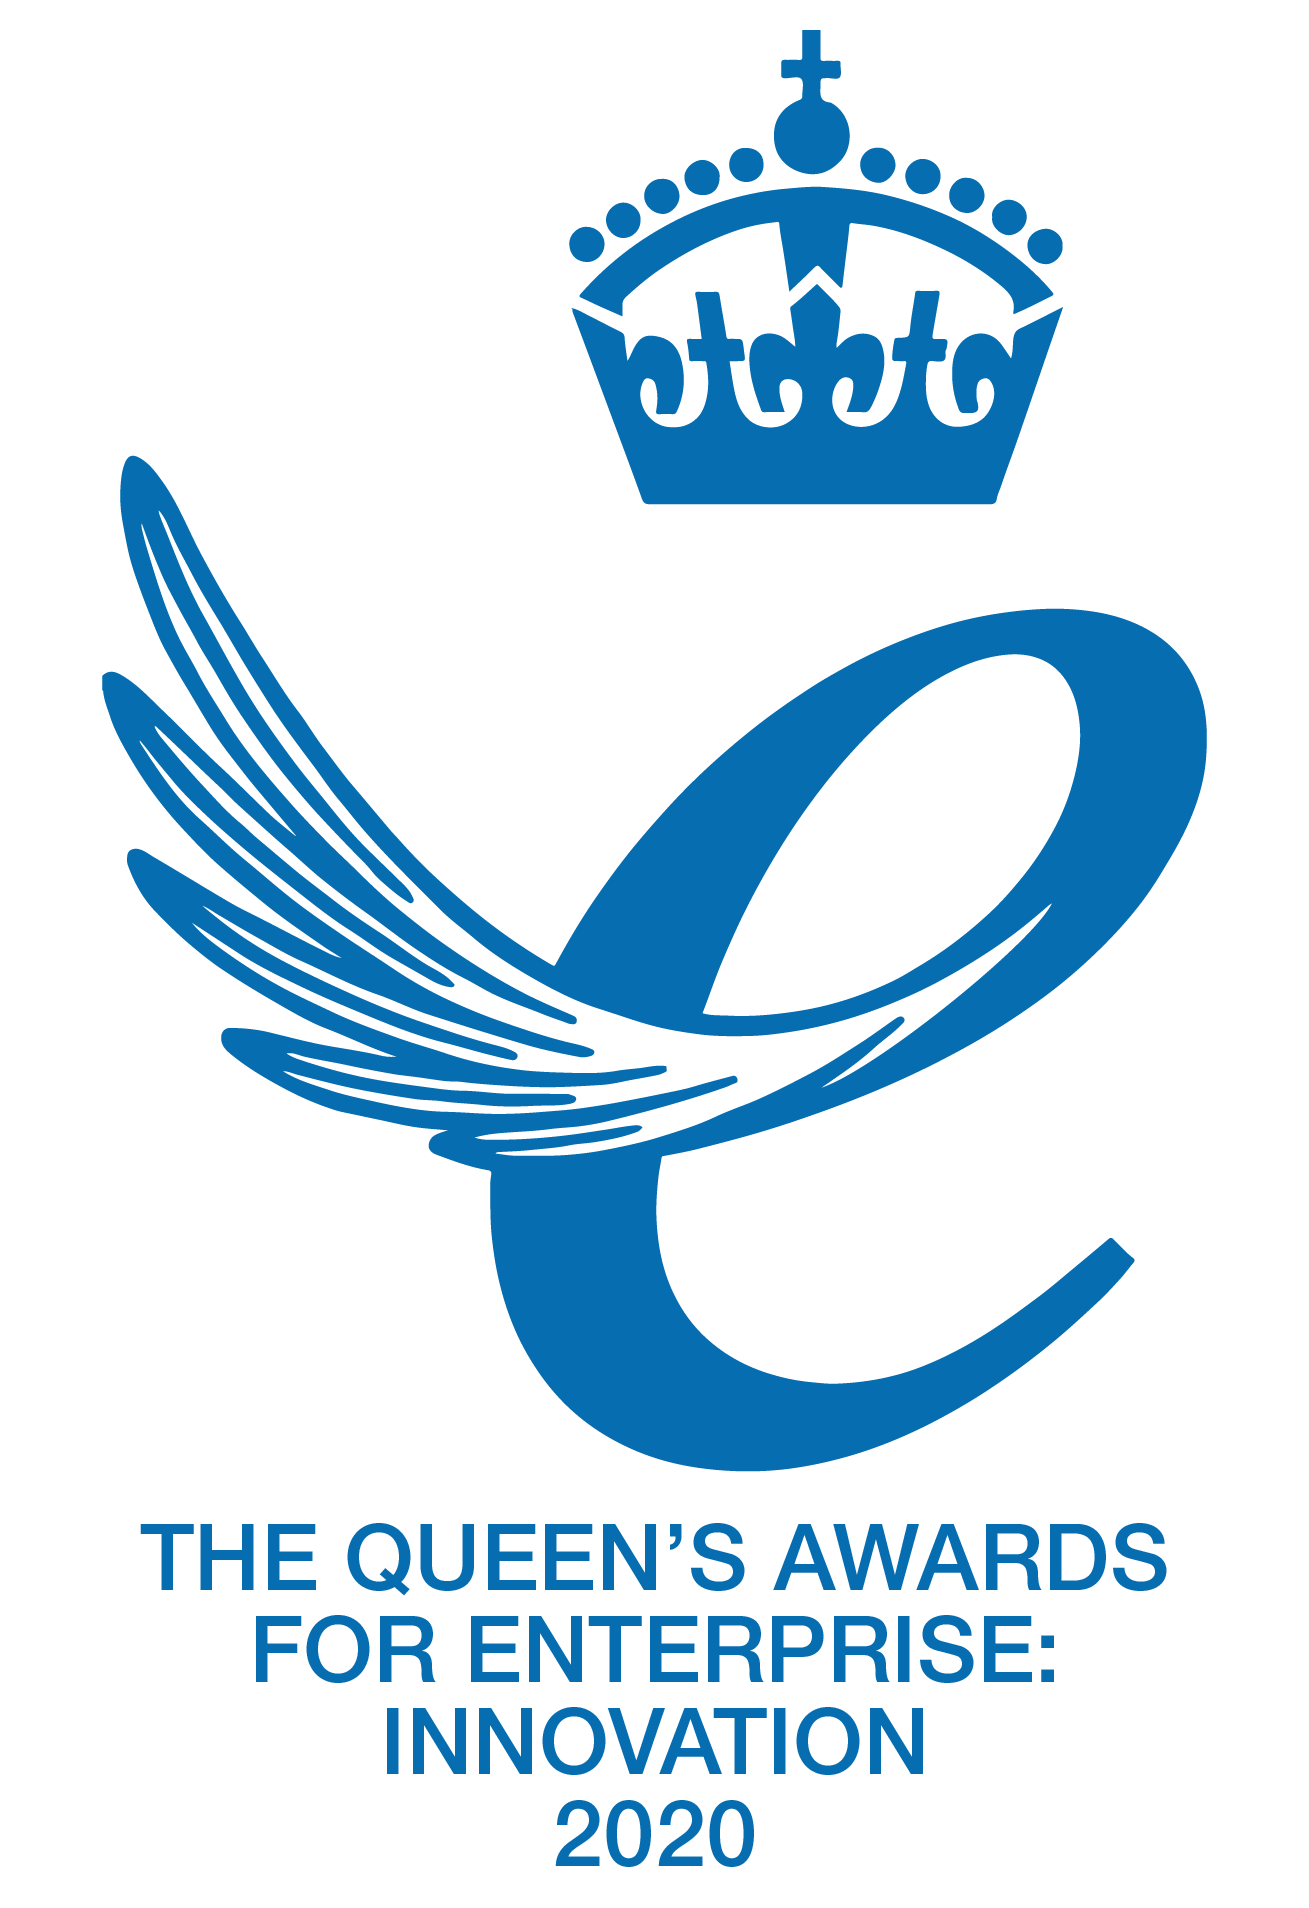 The Queen's Awards for Enterprise in Innovation 2020